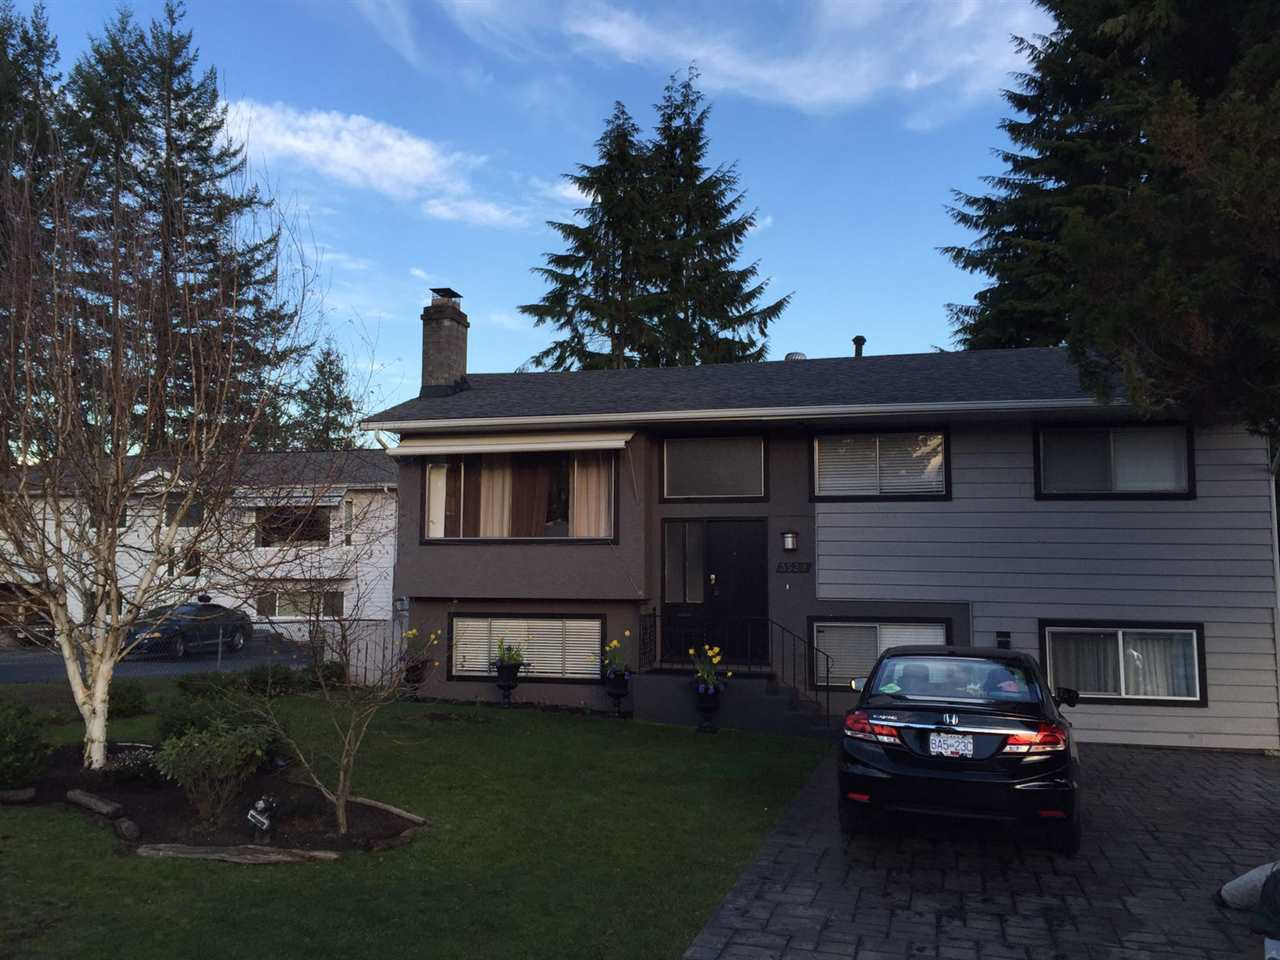 Main Photo: 3522 FLINT Street in Port Coquitlam: Glenwood PQ House for sale : MLS® # R2033048